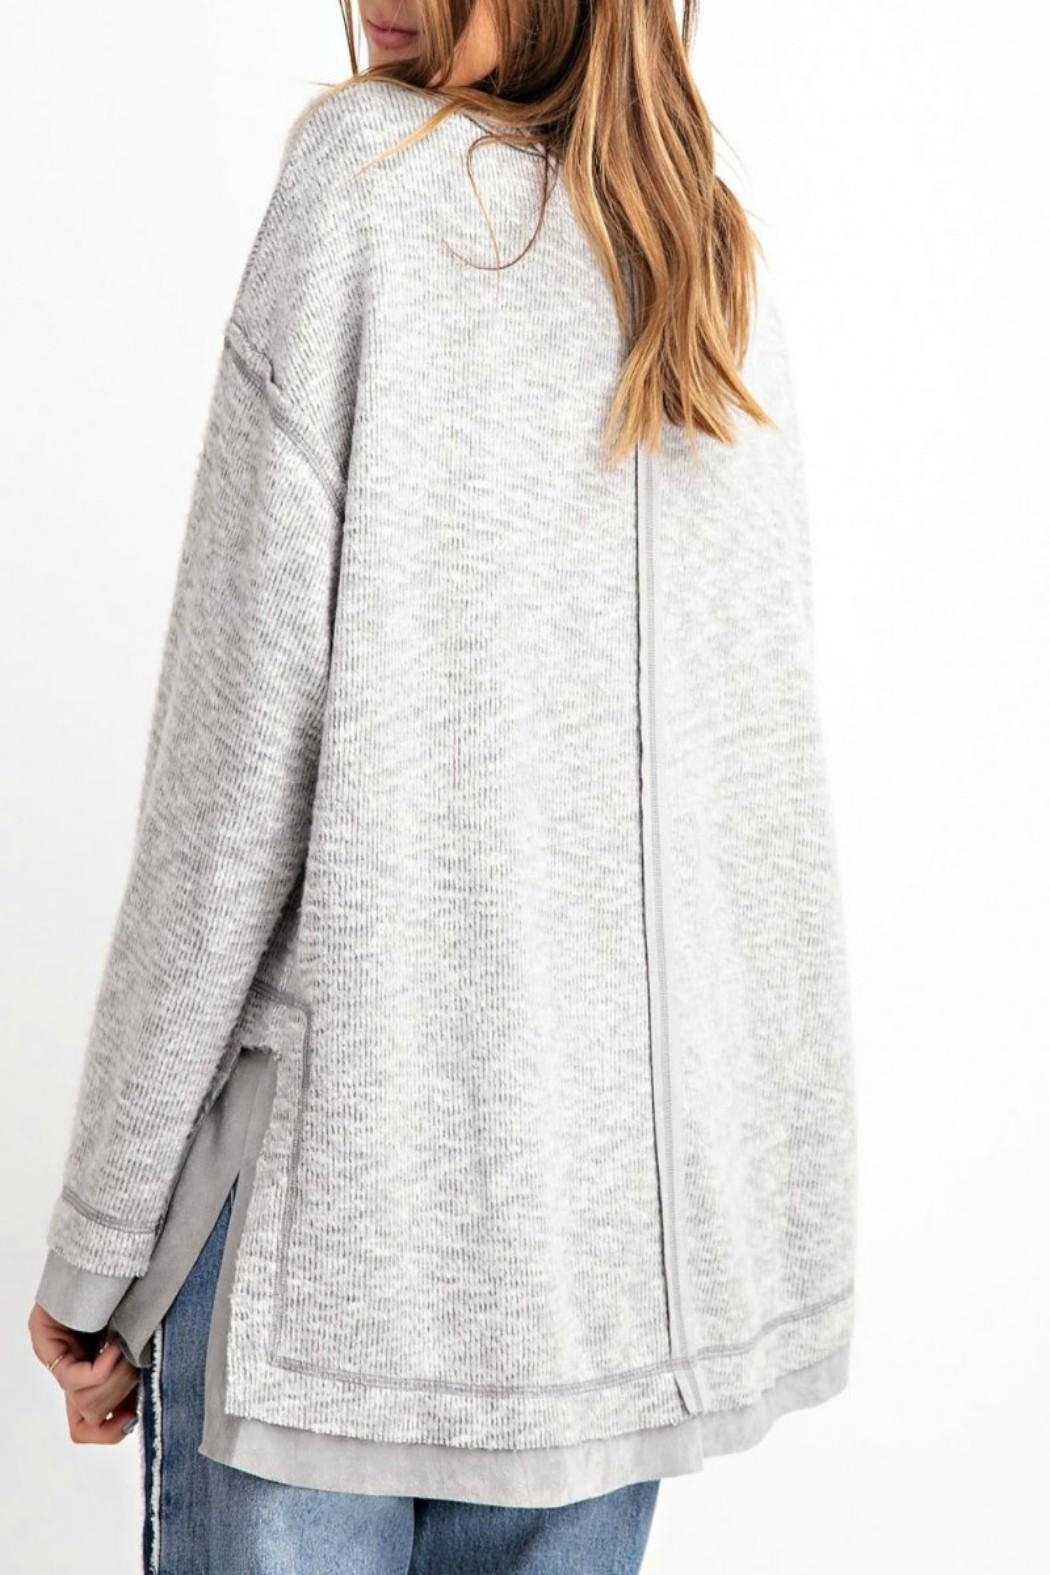 easel Hi-Low Tunic Top - Front Full Image